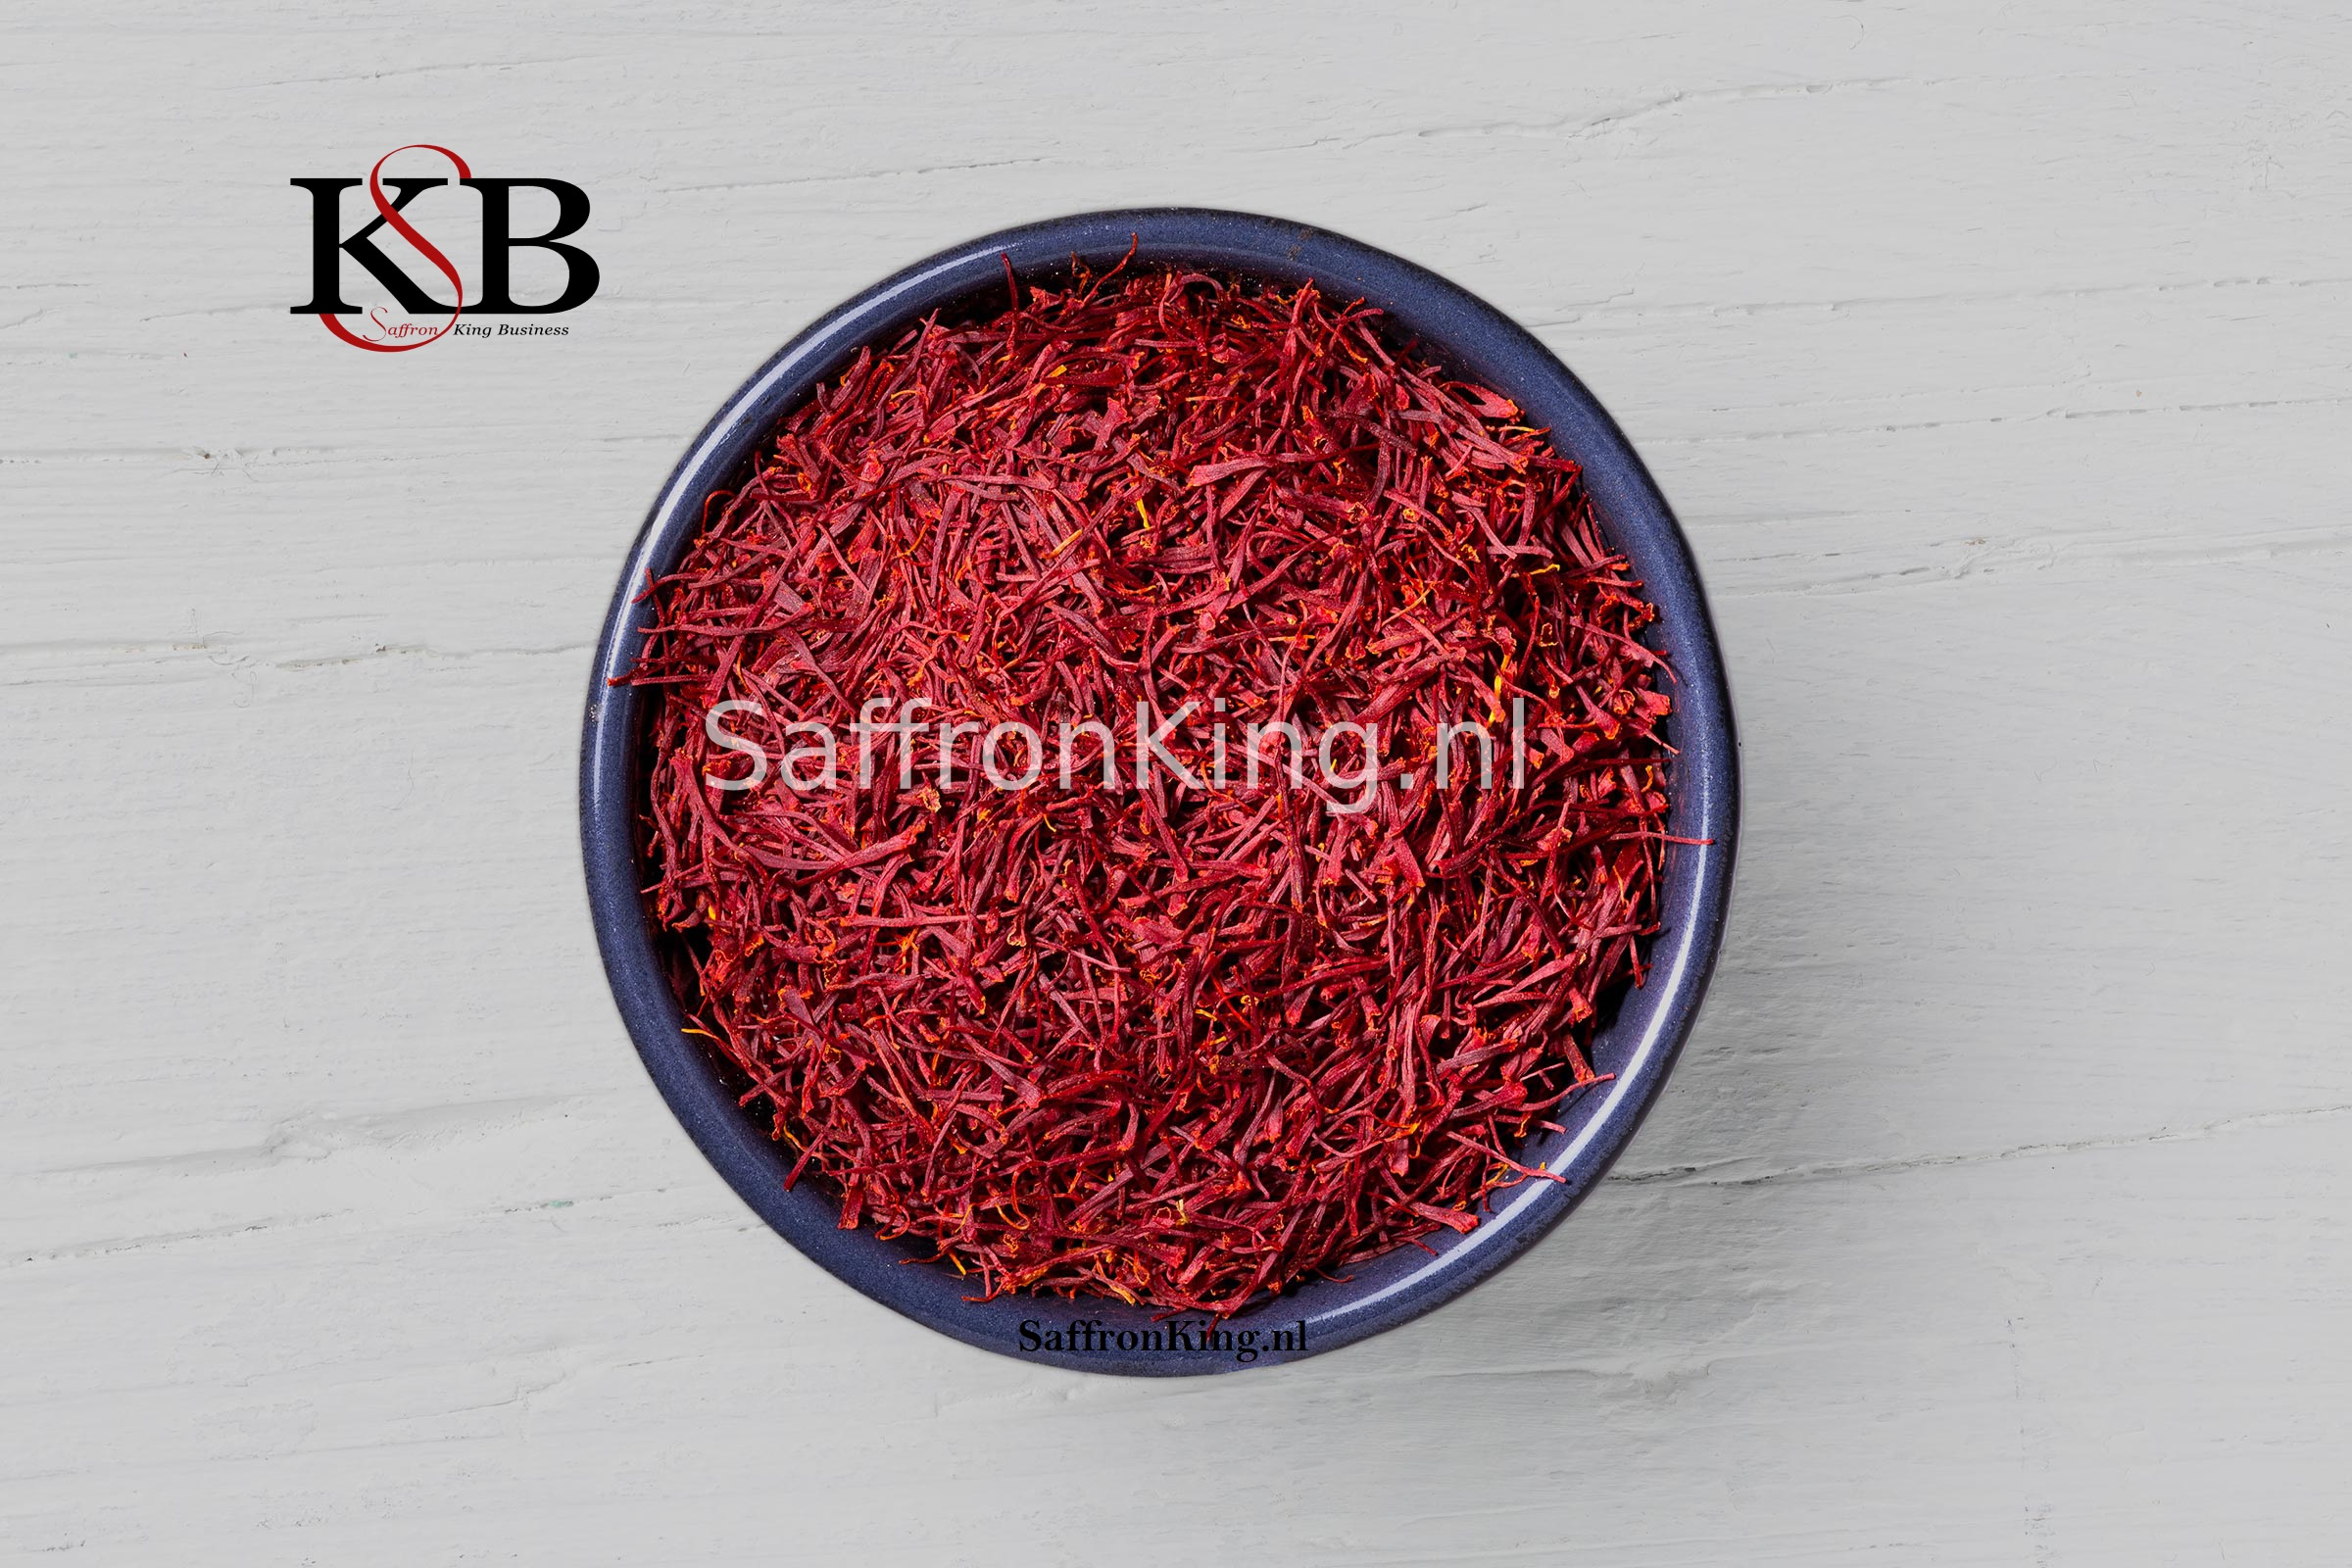 Which is the best Qaenat saffron?